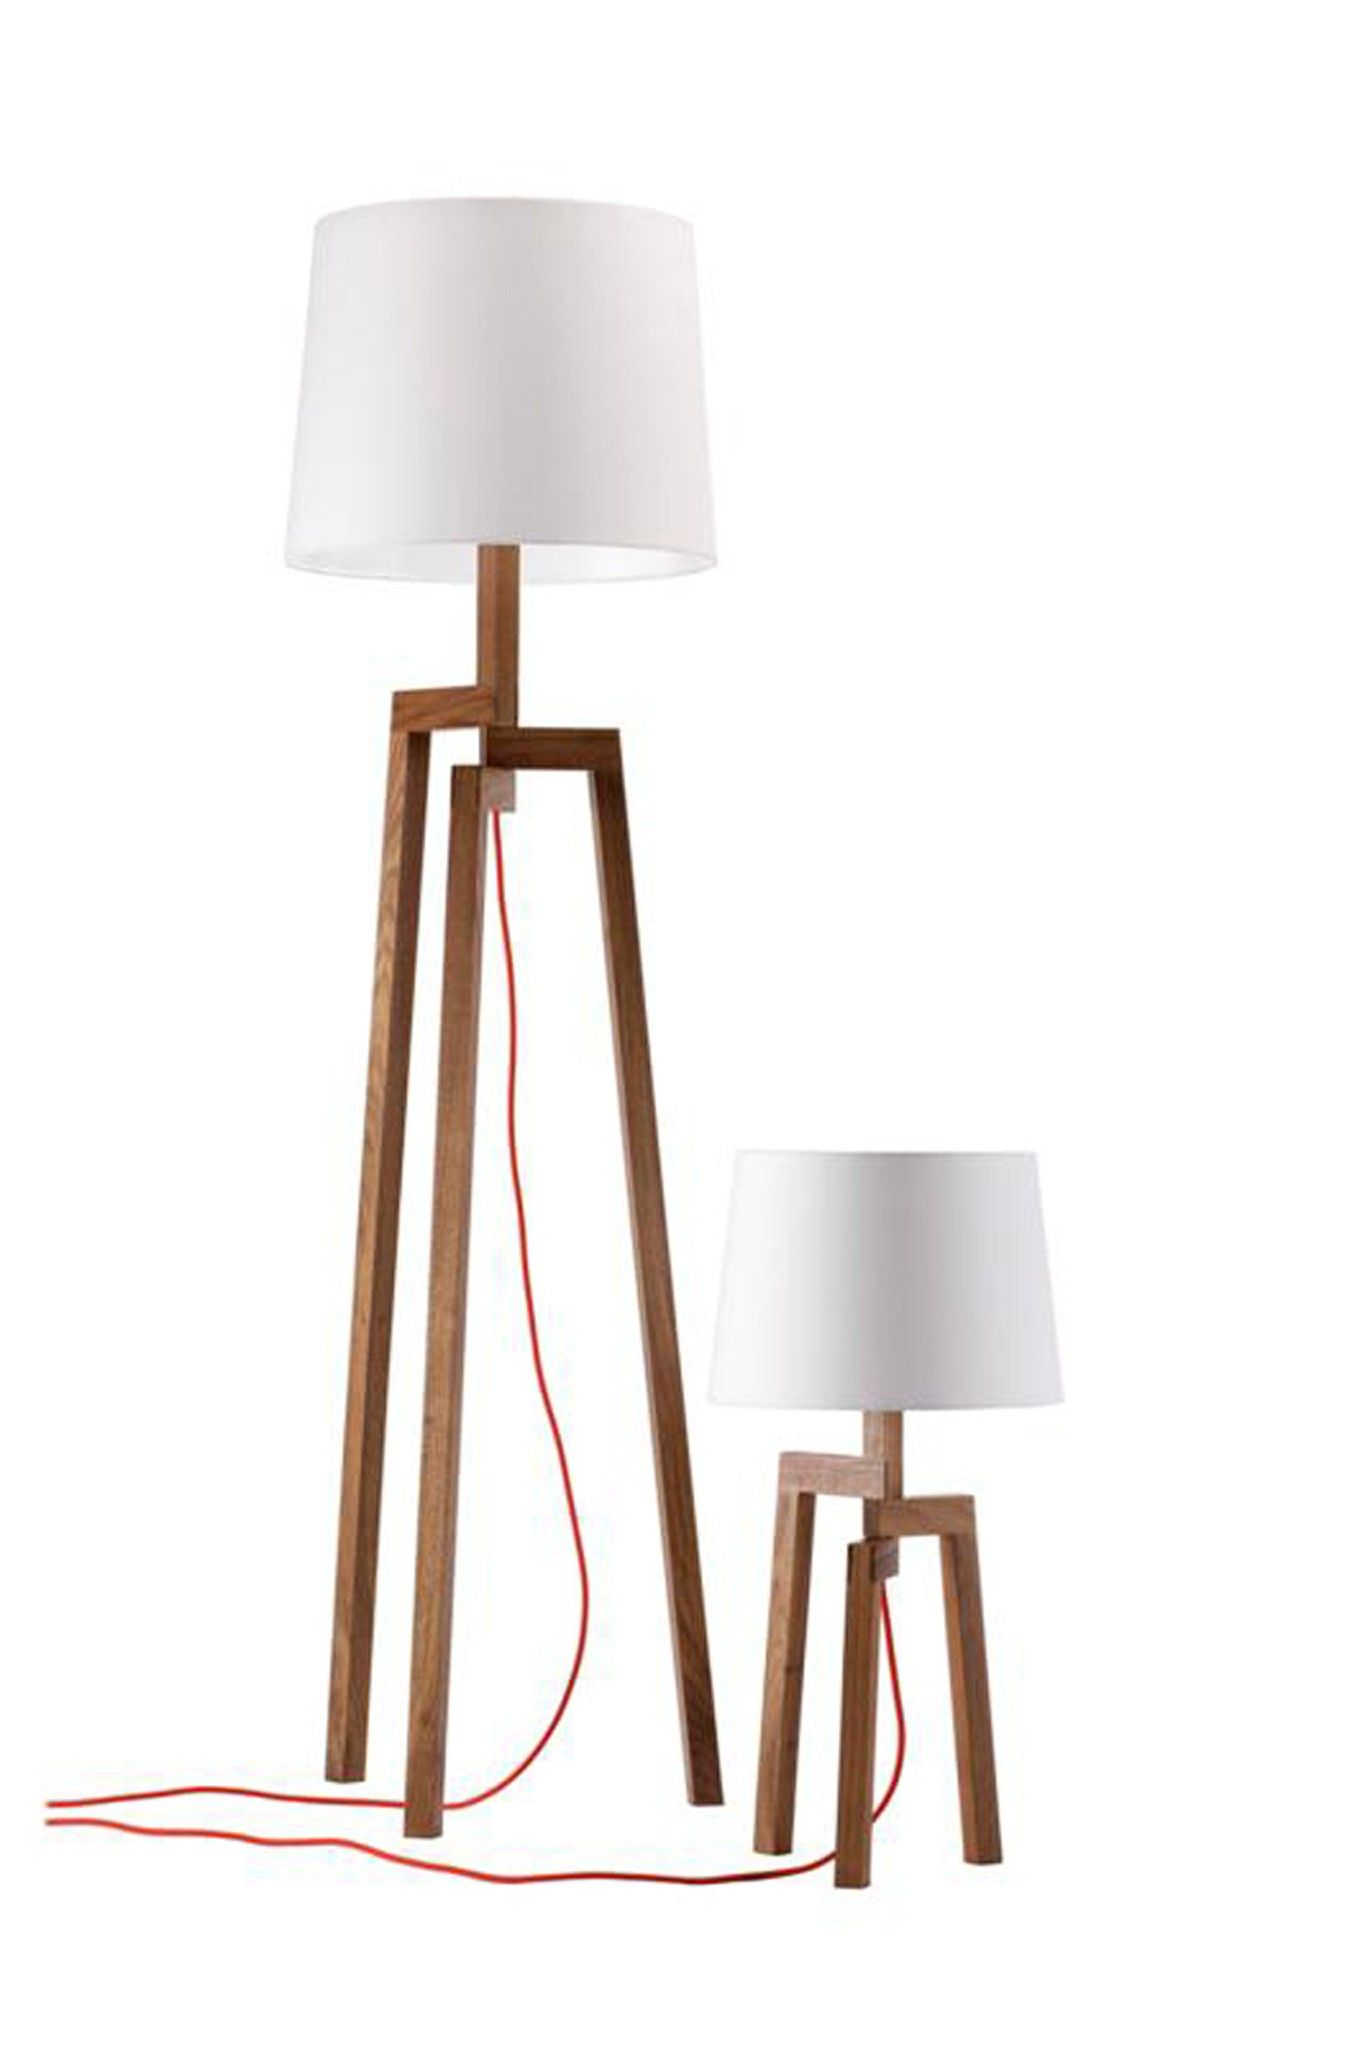 Modern Lamps and Lighting - Stilt Floor Lamp by Blu Dot | Arch ...